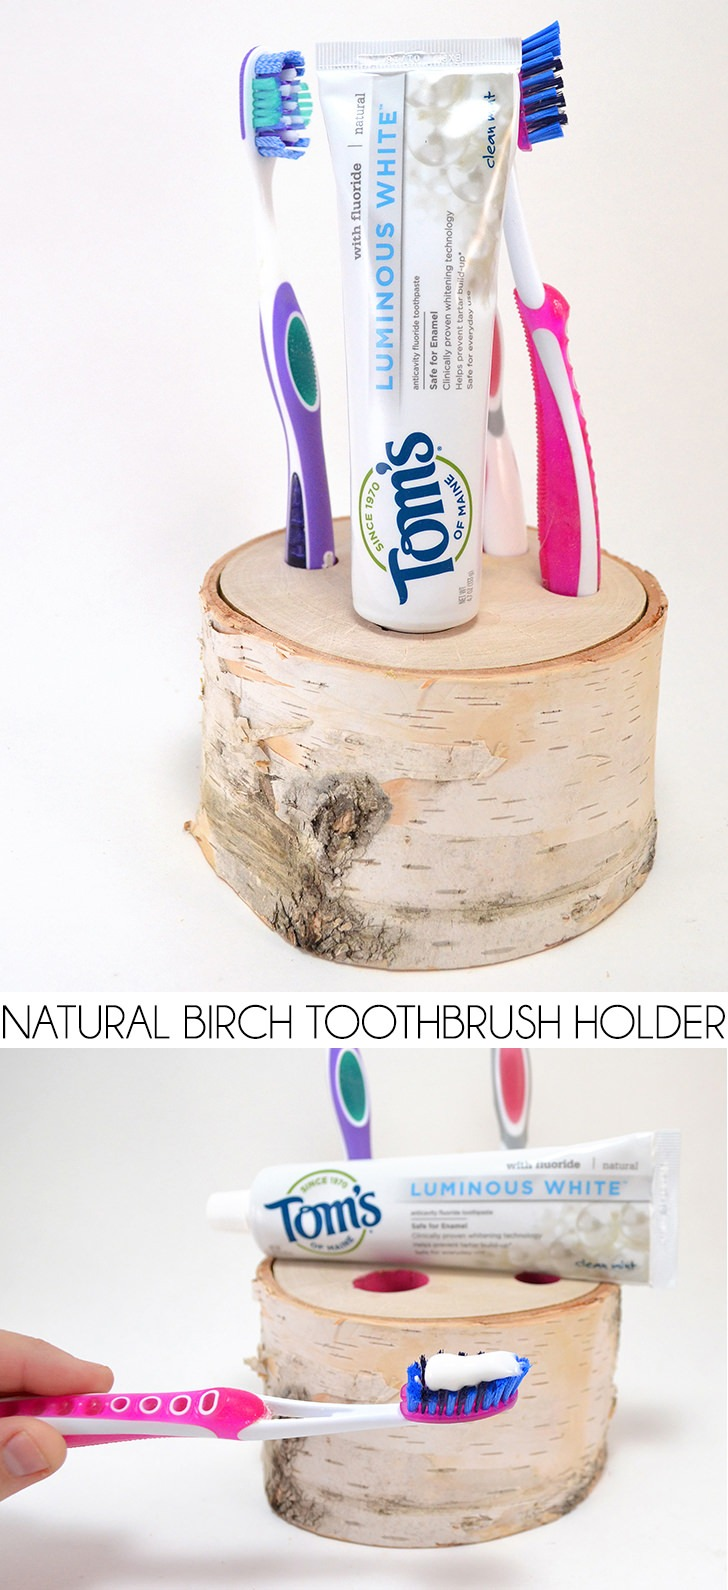 Natural Birch Toothbrush Holder Tutorial